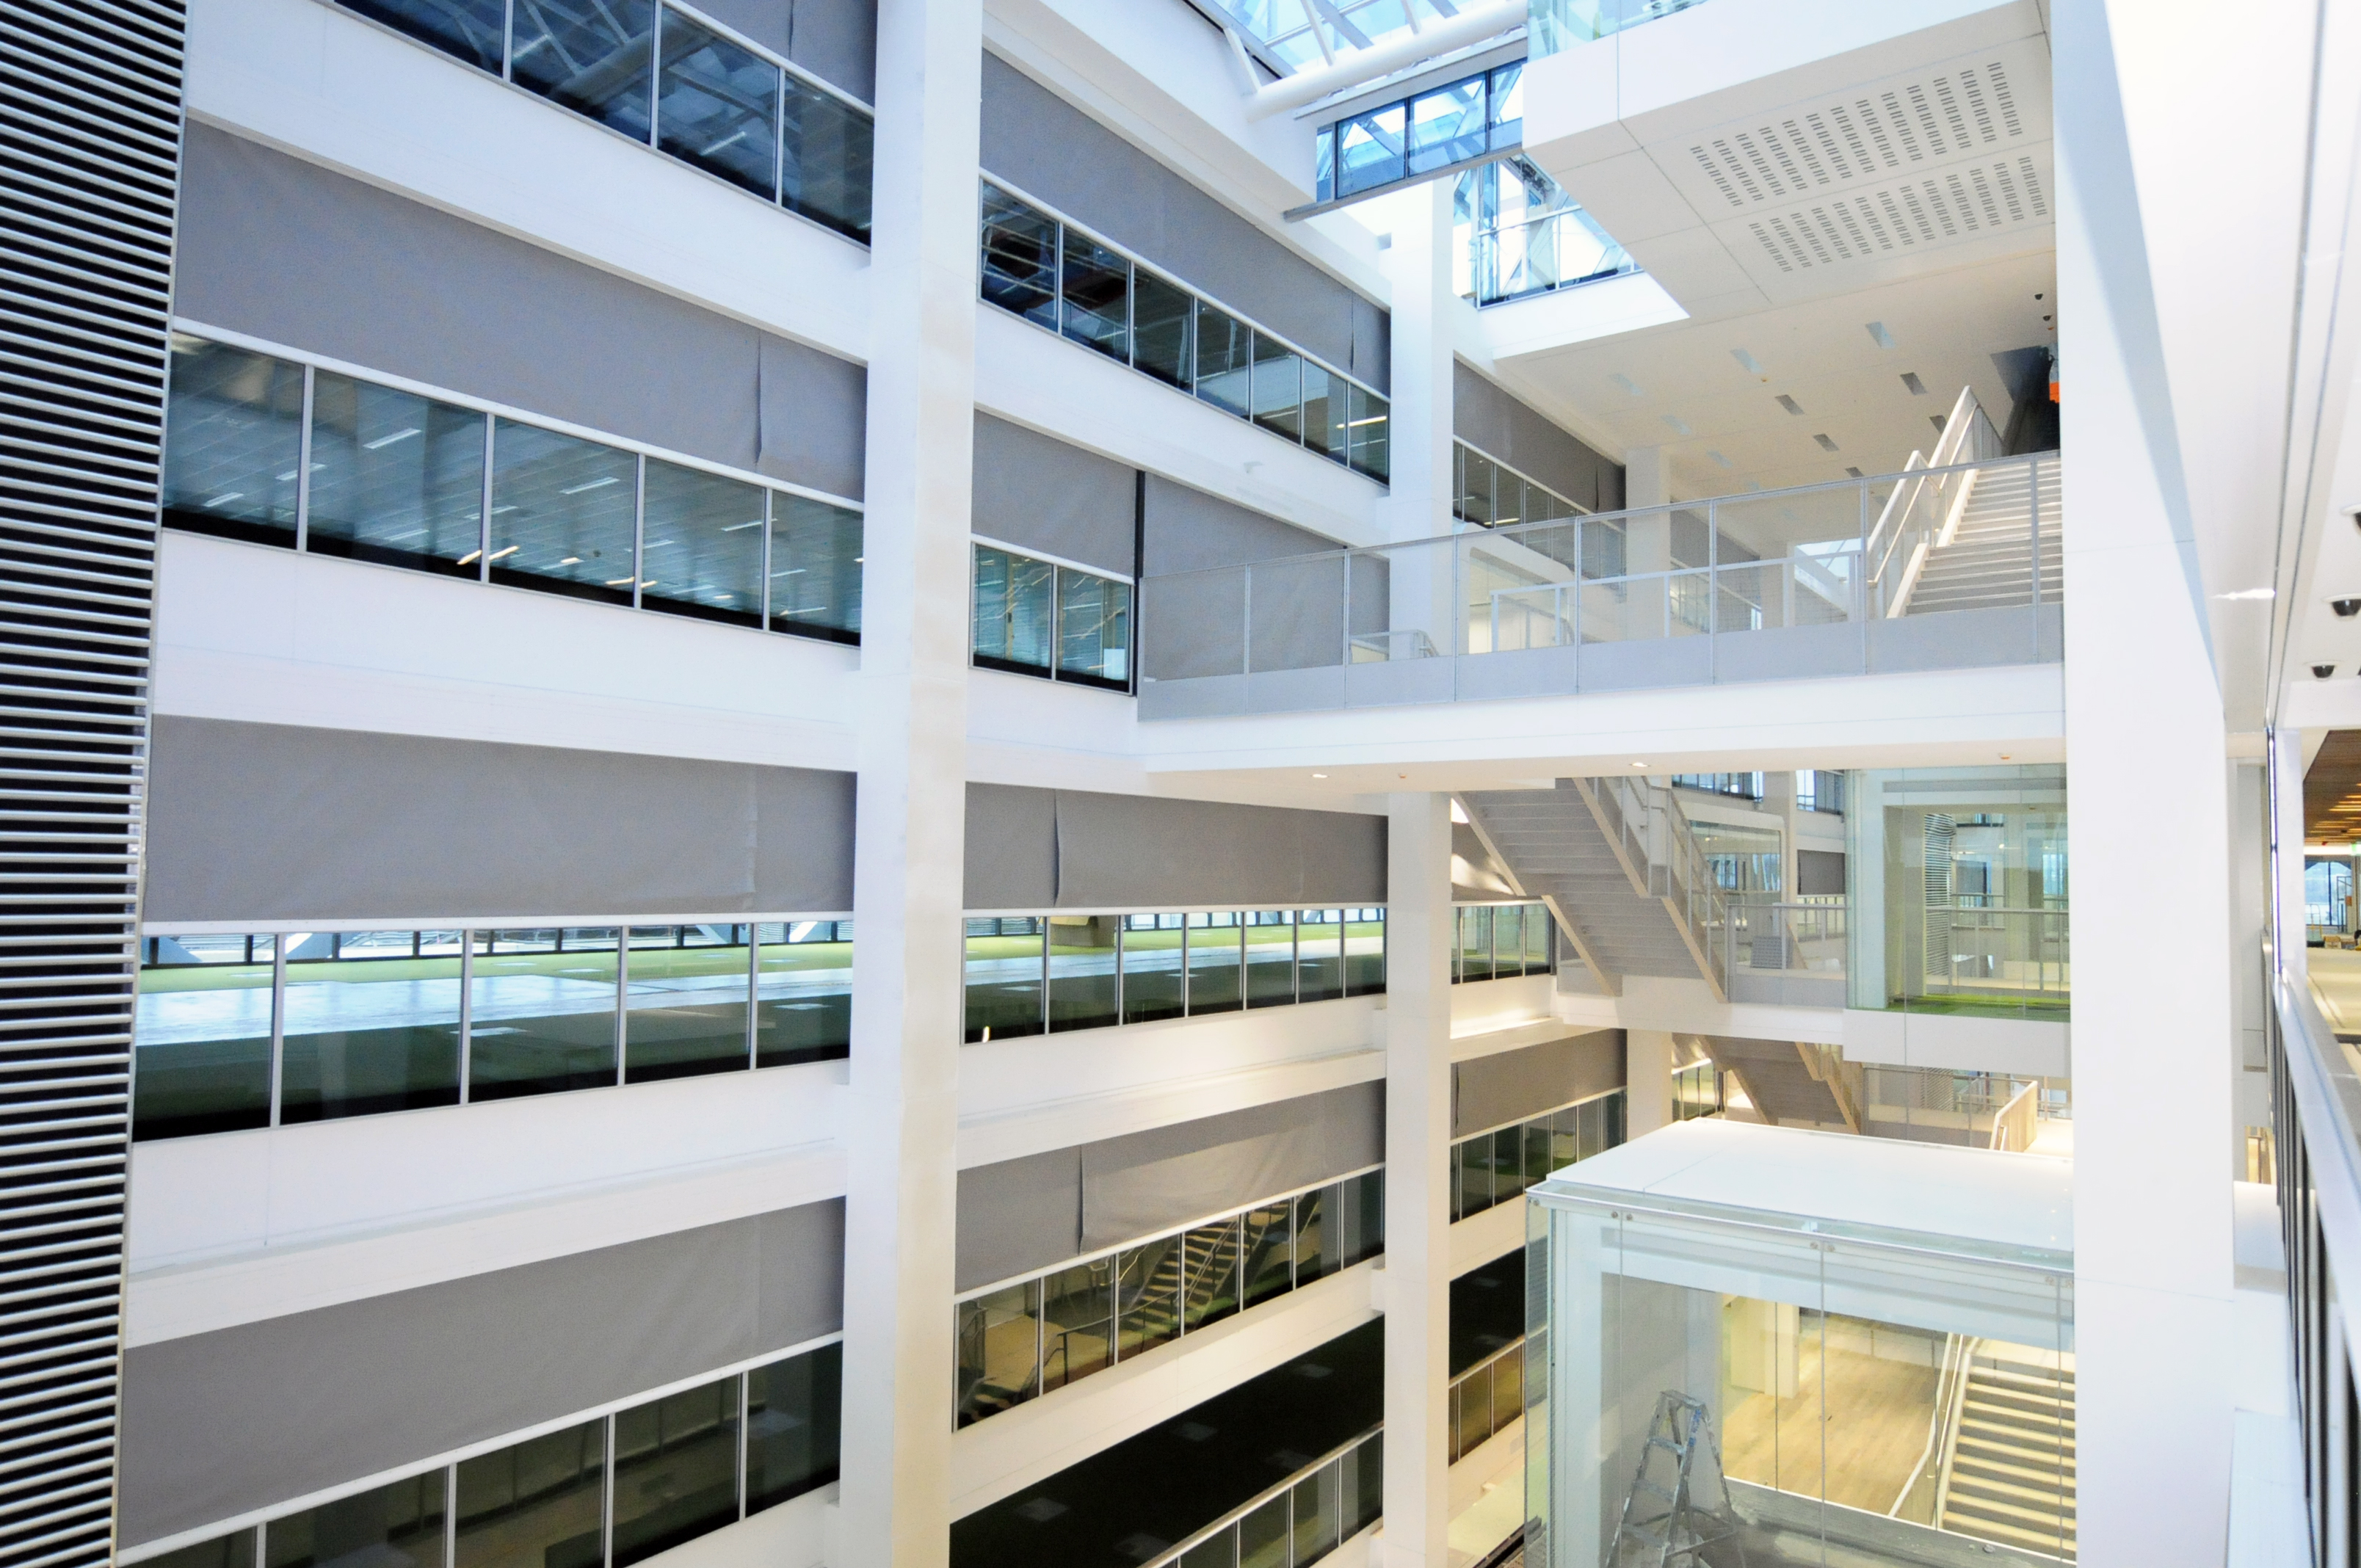 Coopers Fire FireMaster Fire Curtain protects an atrium from the spread of smoke and fire